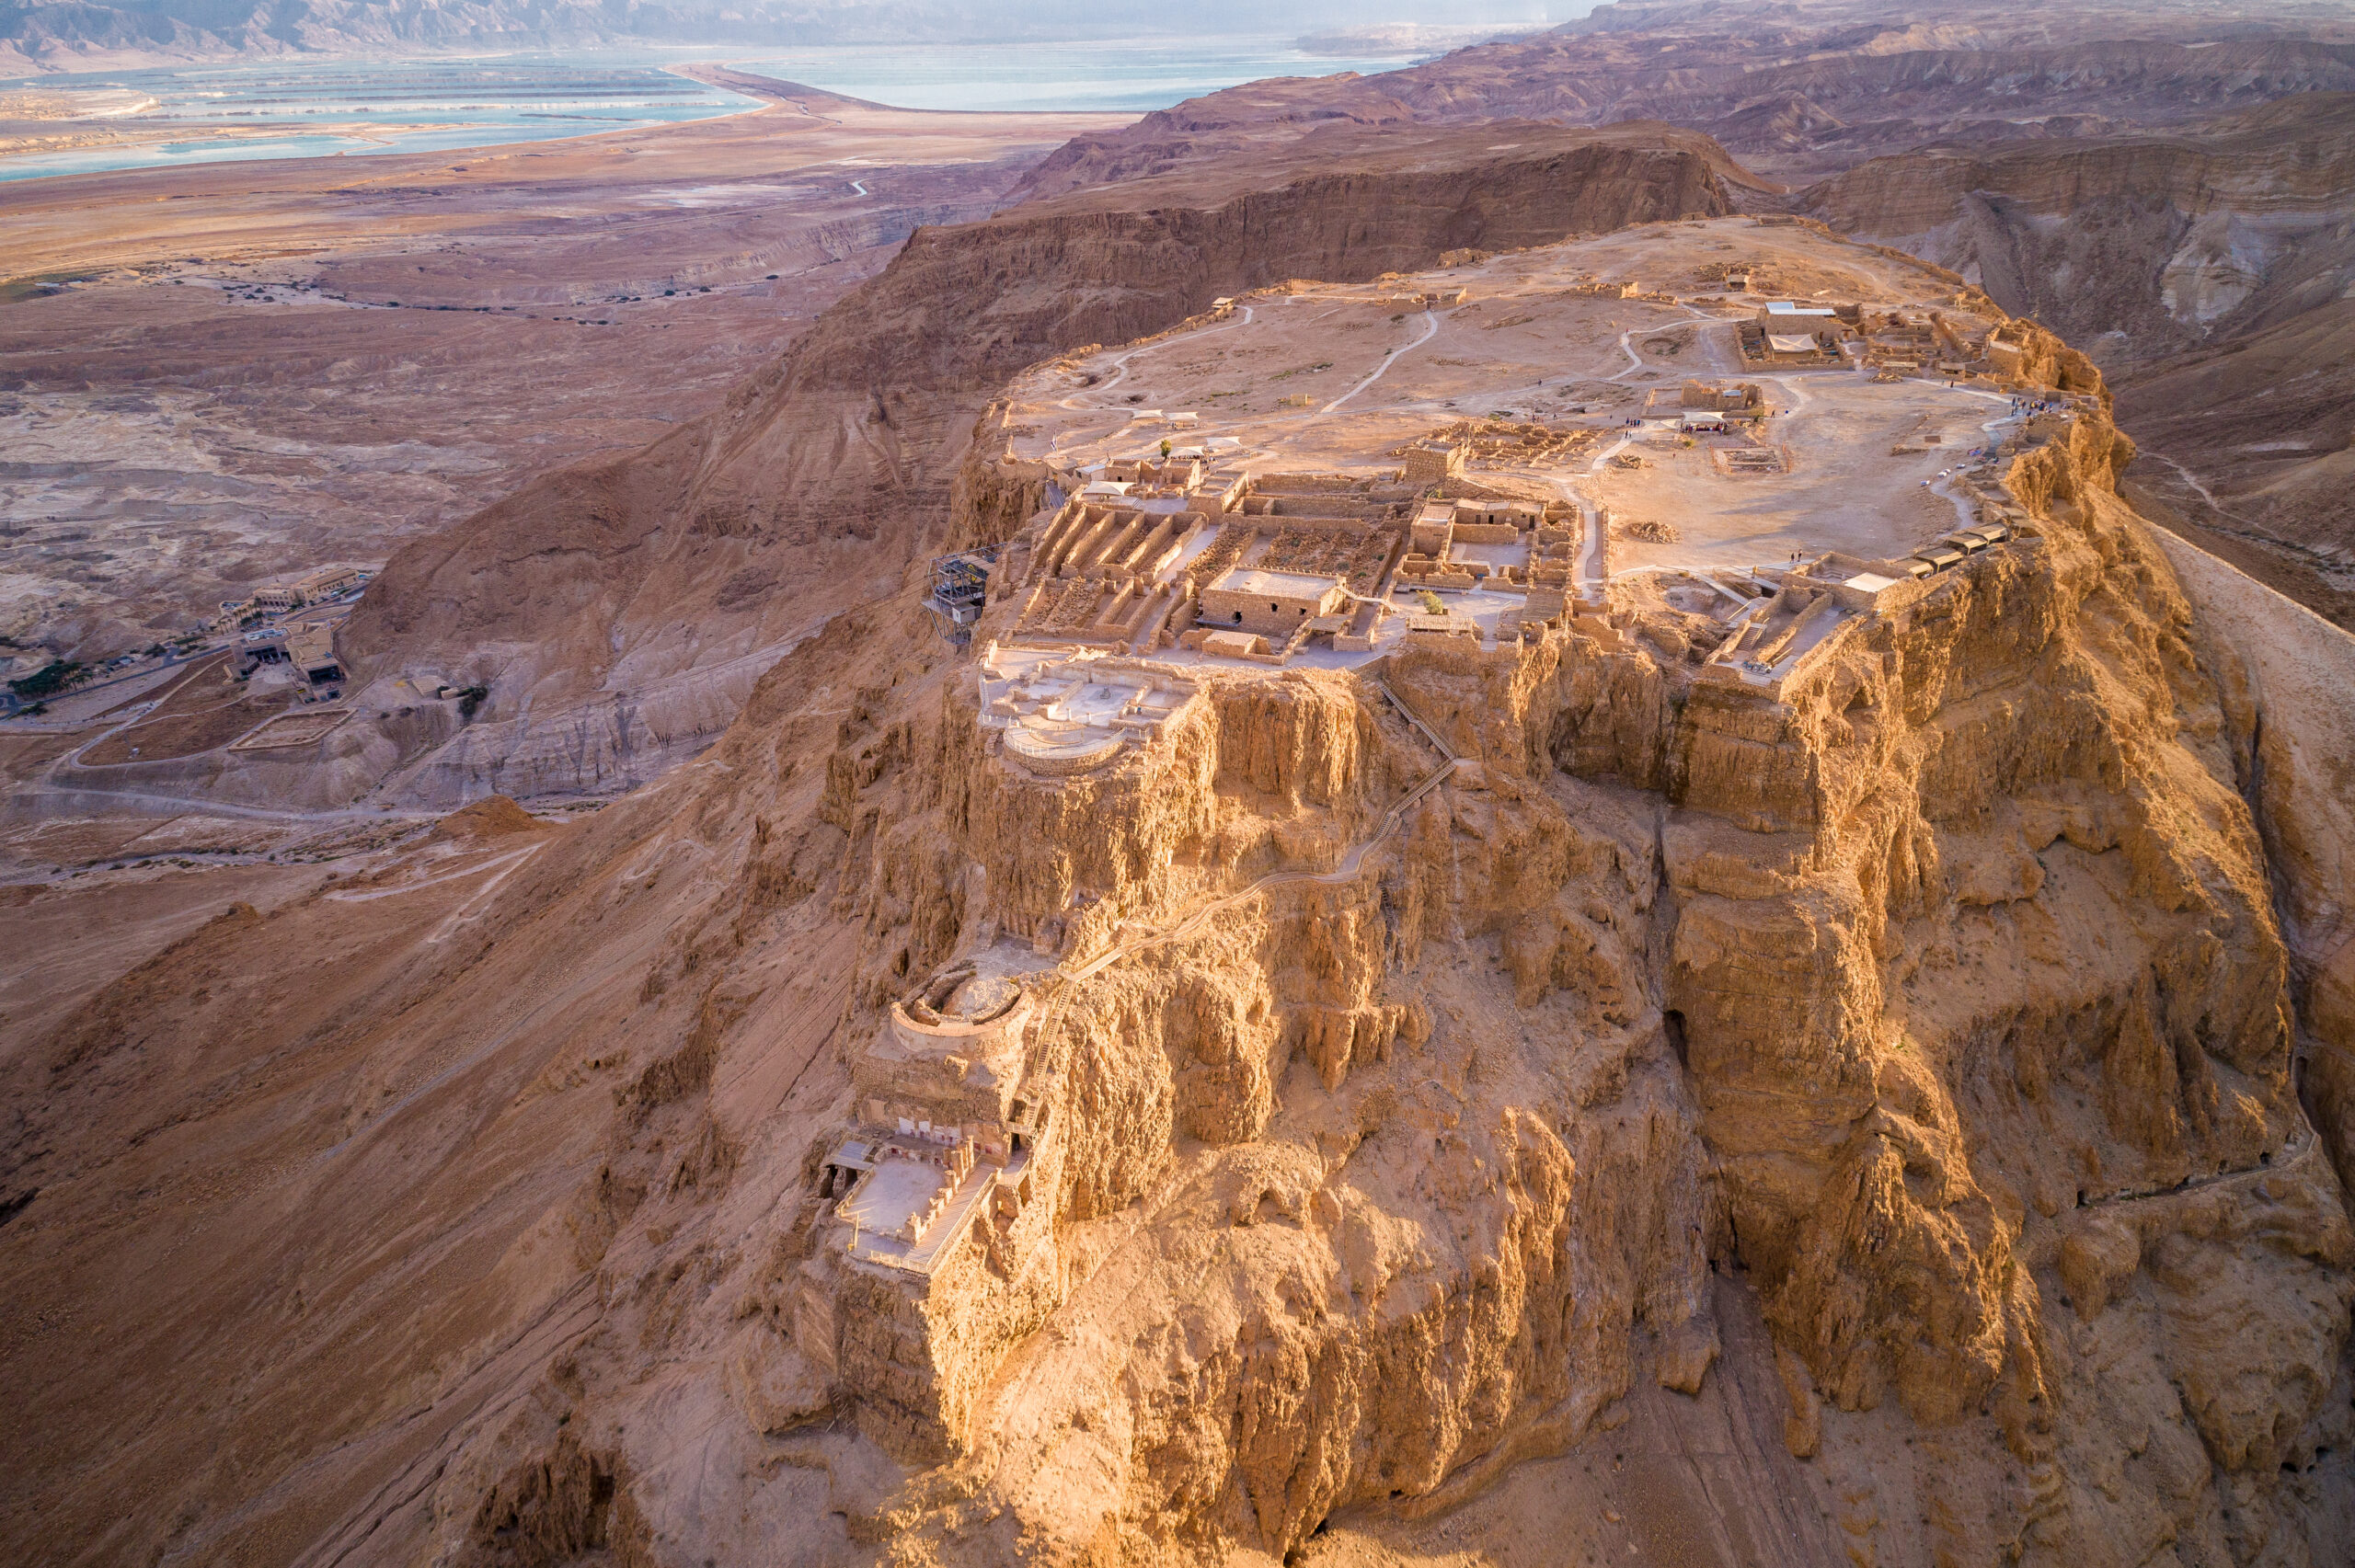 The ancient fortification in the Southern District of Israel. Masada National Park in the Dead Sea region of Israel. The fortress of Masada.